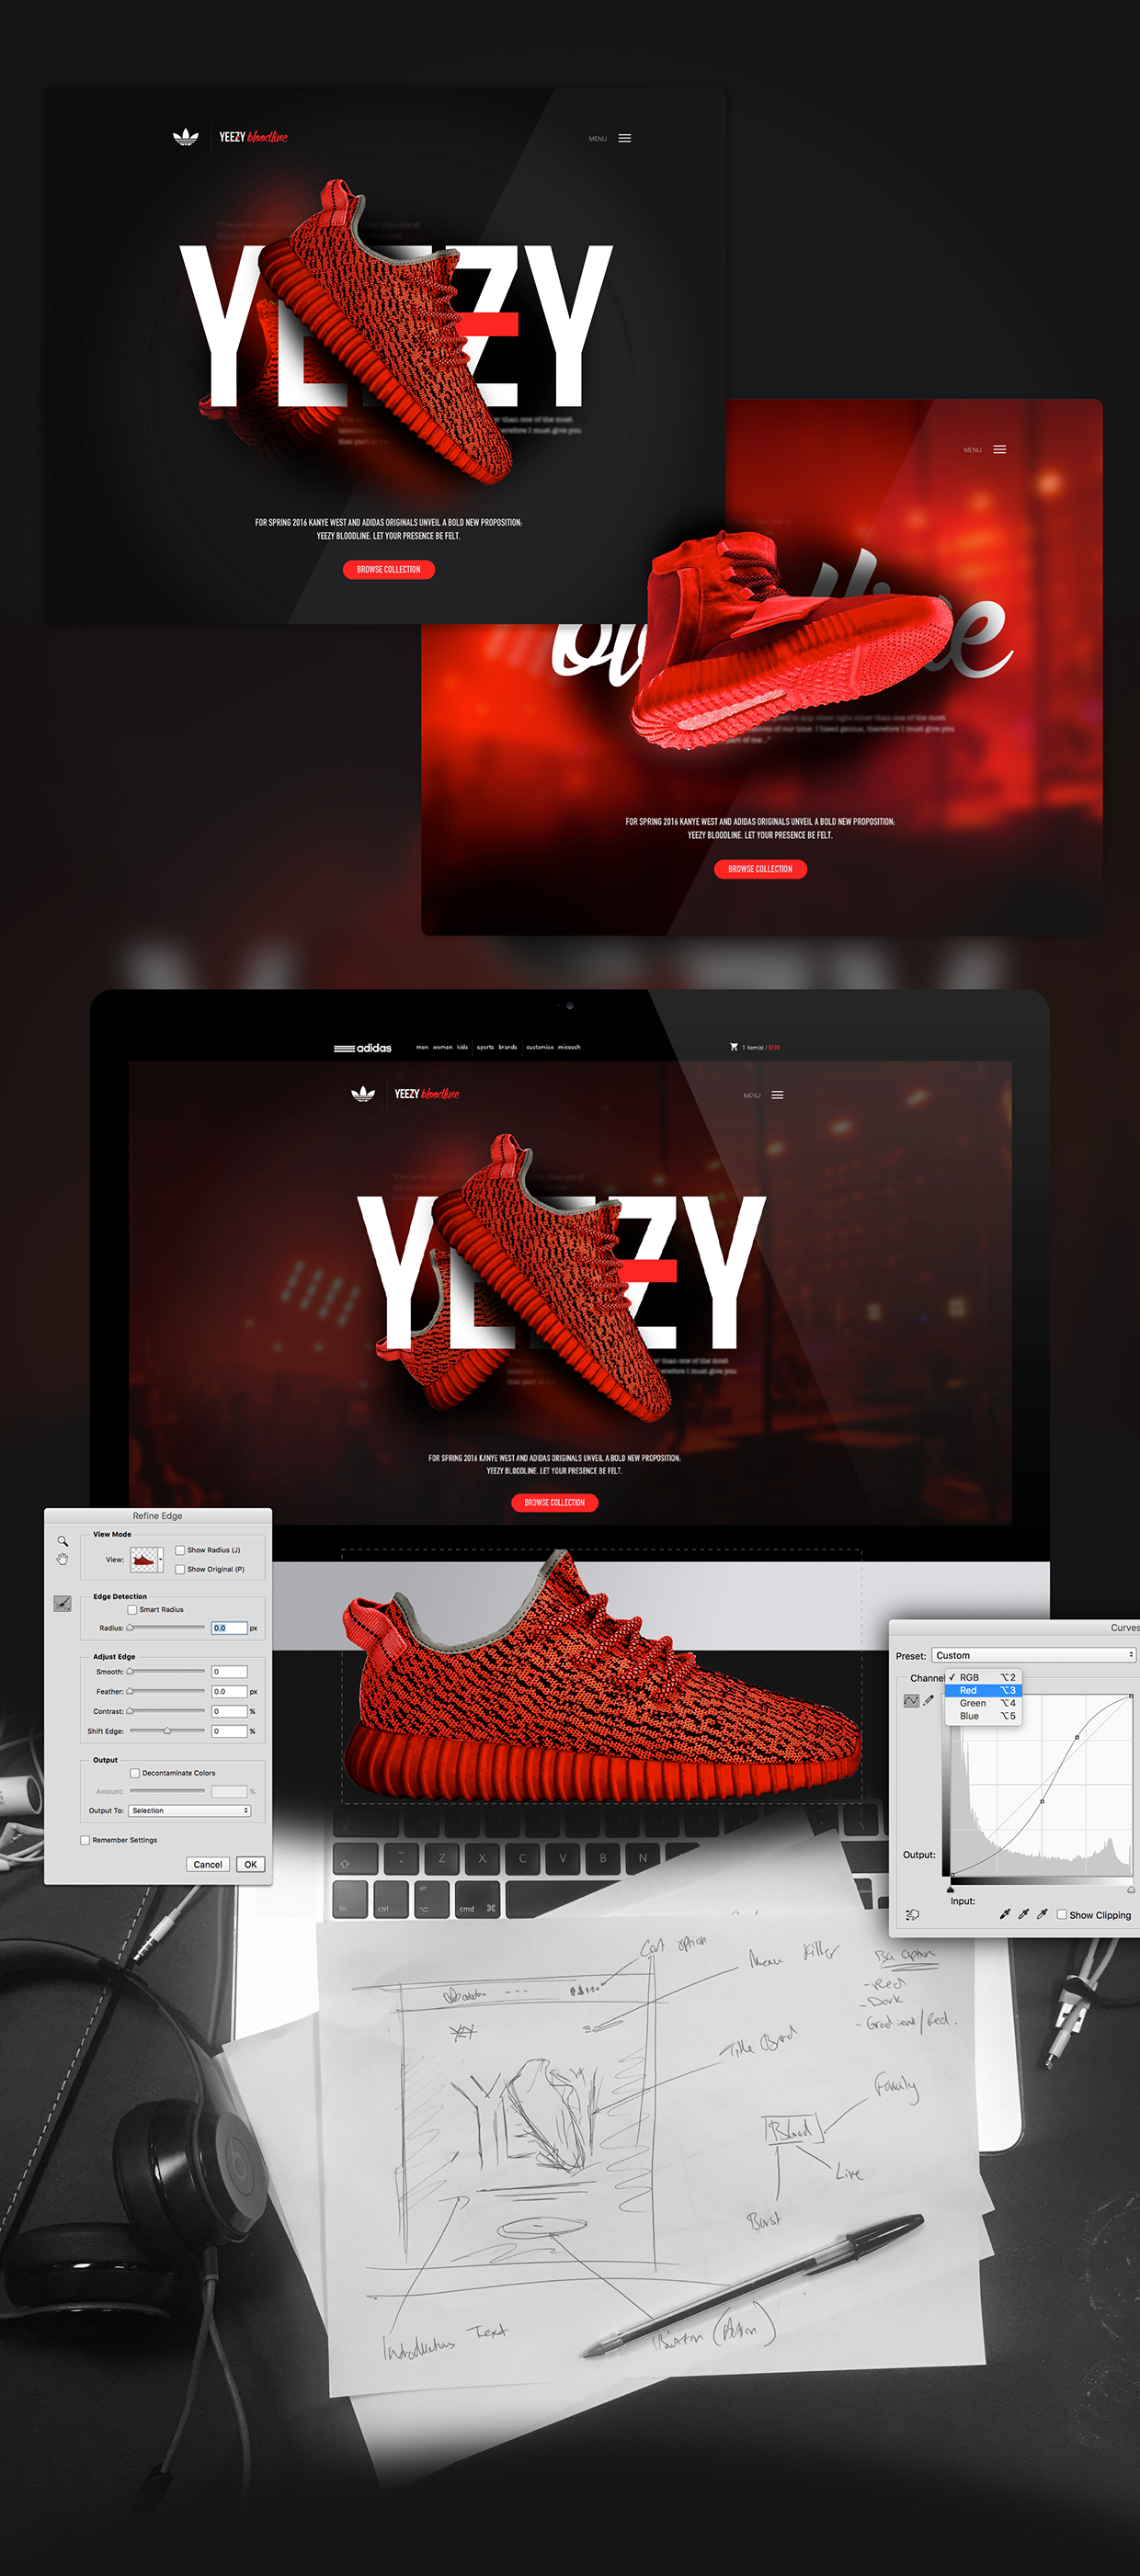 the best attitude 55b93 be4c1 Adidas X Kanye West  Yeezy Bloodline  Web App Concept on Behance